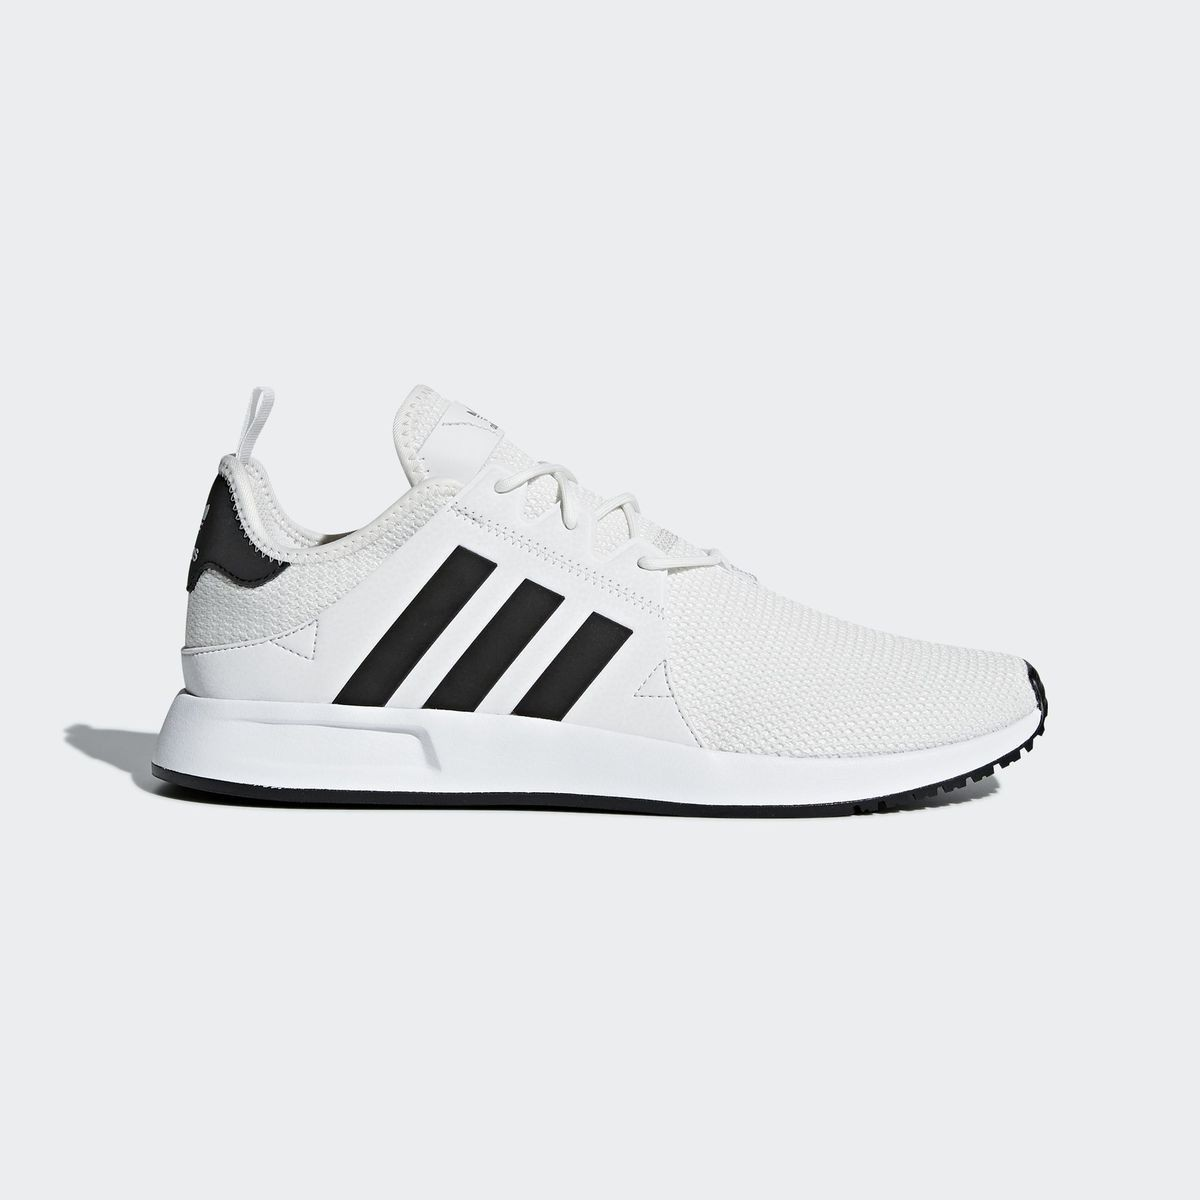 chaussure de marche adidas taille 43